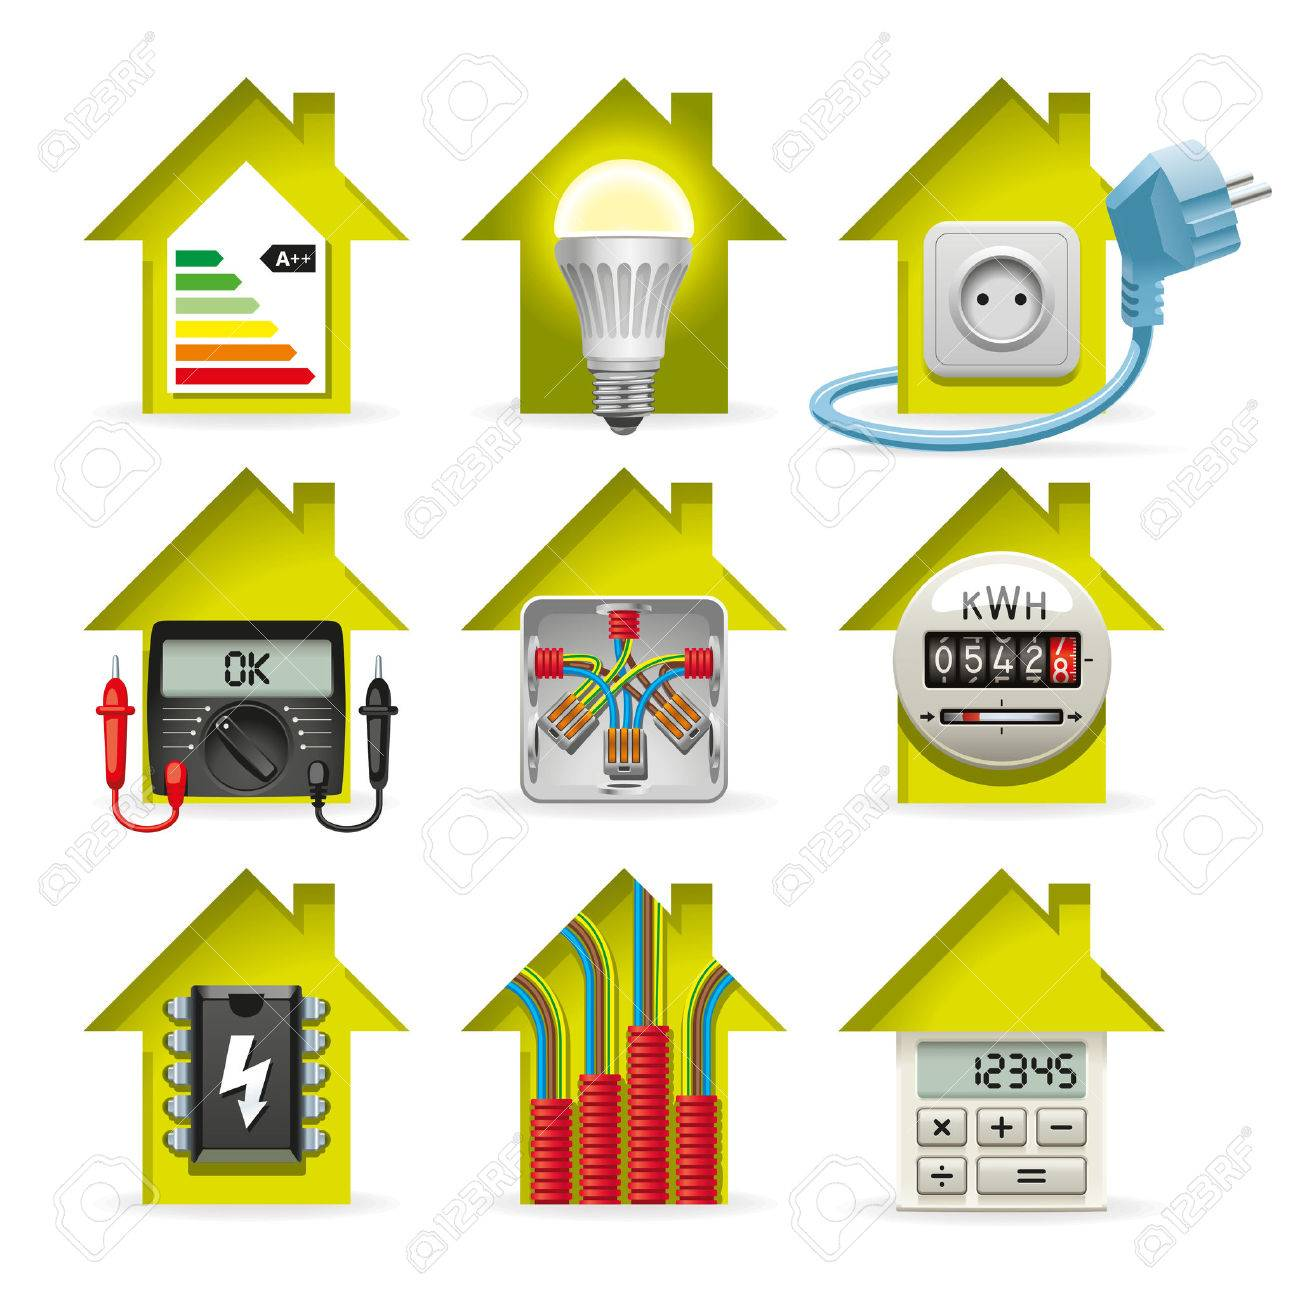 hight resolution of icons installation of electrical equipment and wiring in the house stock vector 34469721